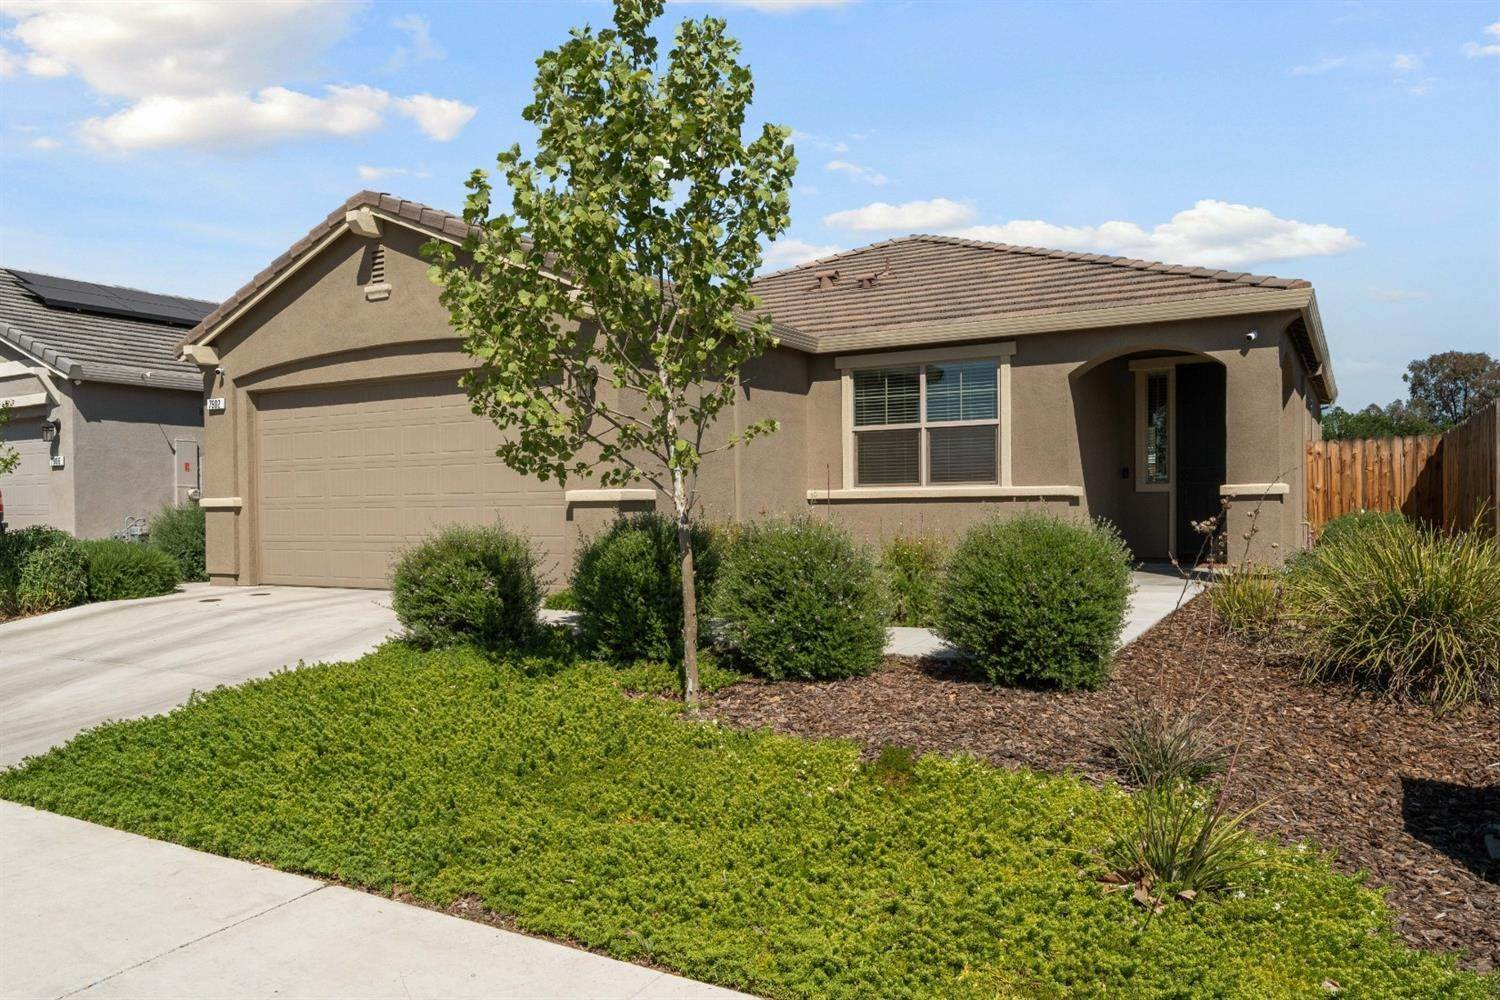 3. Single Family Homes for Active at 7902 Little Plum Way Antelope, California 95843 United States